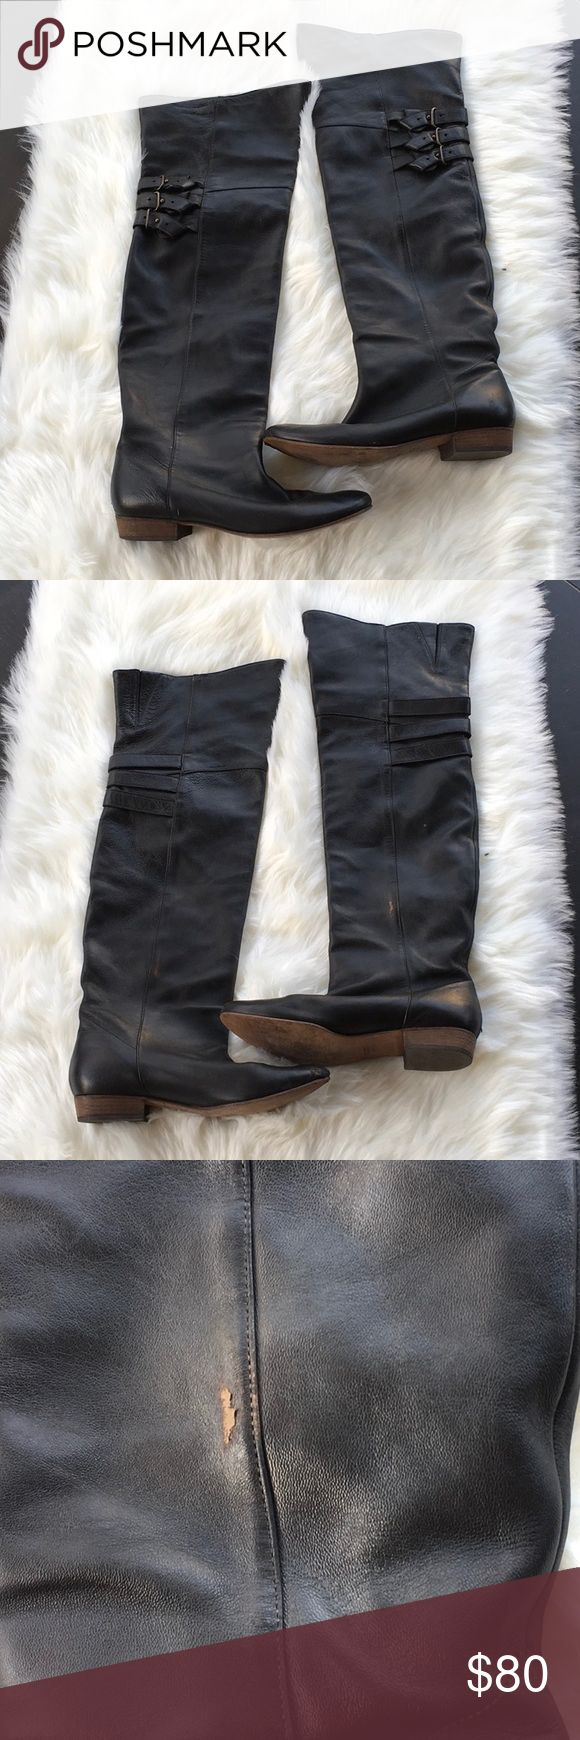 """Joie Leather Strapped Back Over the Knee Boots Joie Leather Strapped Back Over the Knee Boots The length is approx 21"""" These is minor damages as pictured. Joie Shoes Over the Knee Boots"""